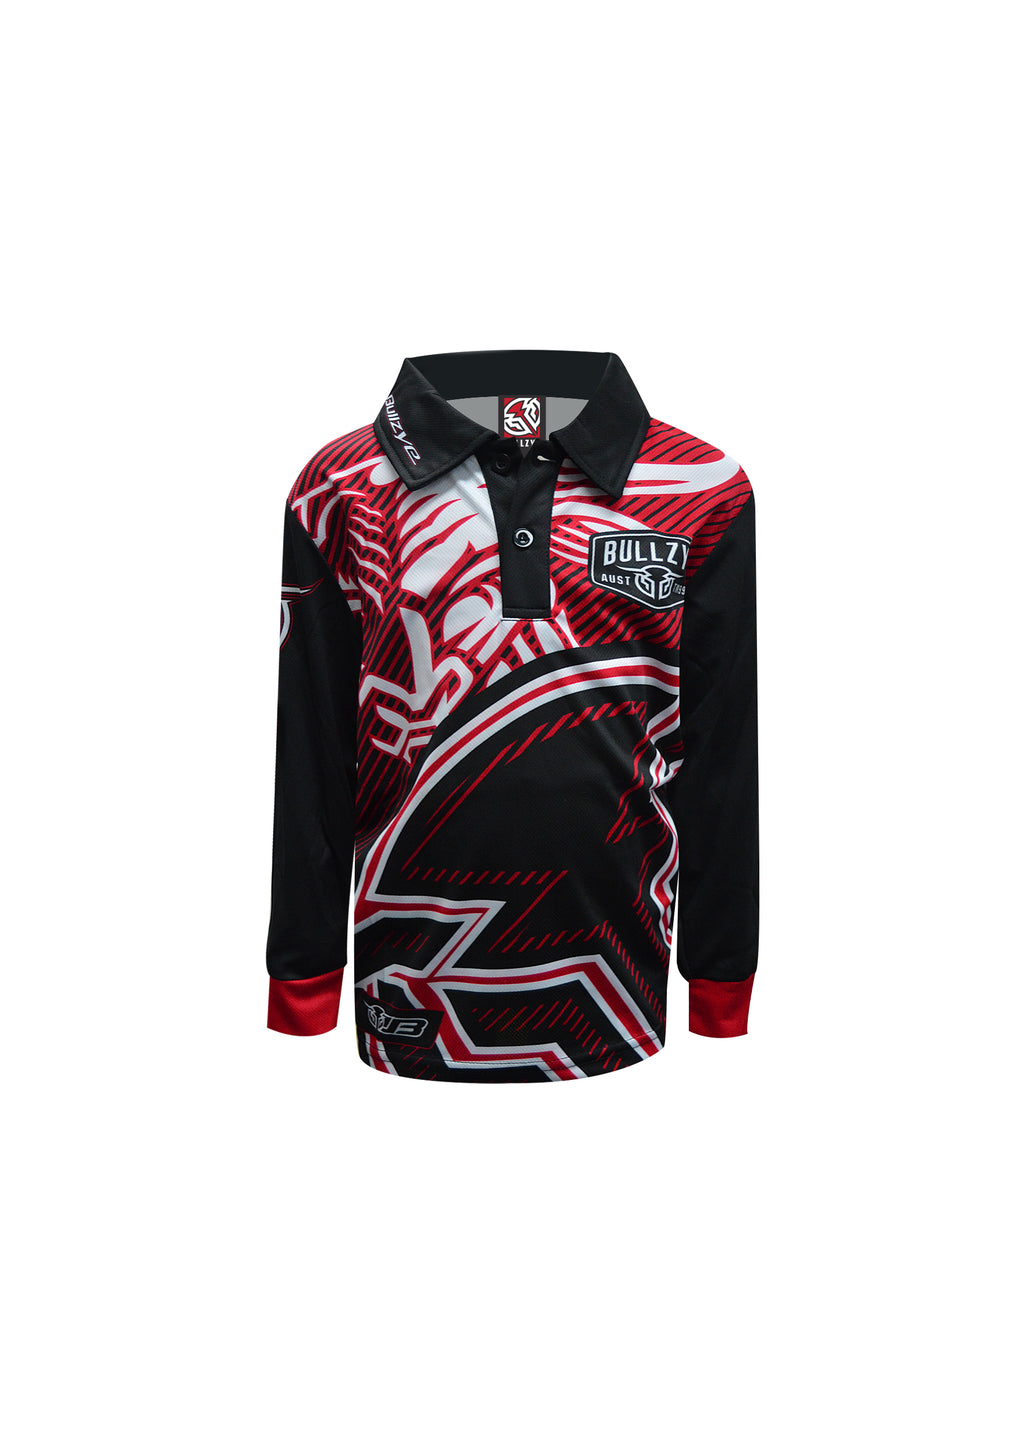 Bullzye | Kids | Fishing Shirt | Charging Bulls | Red